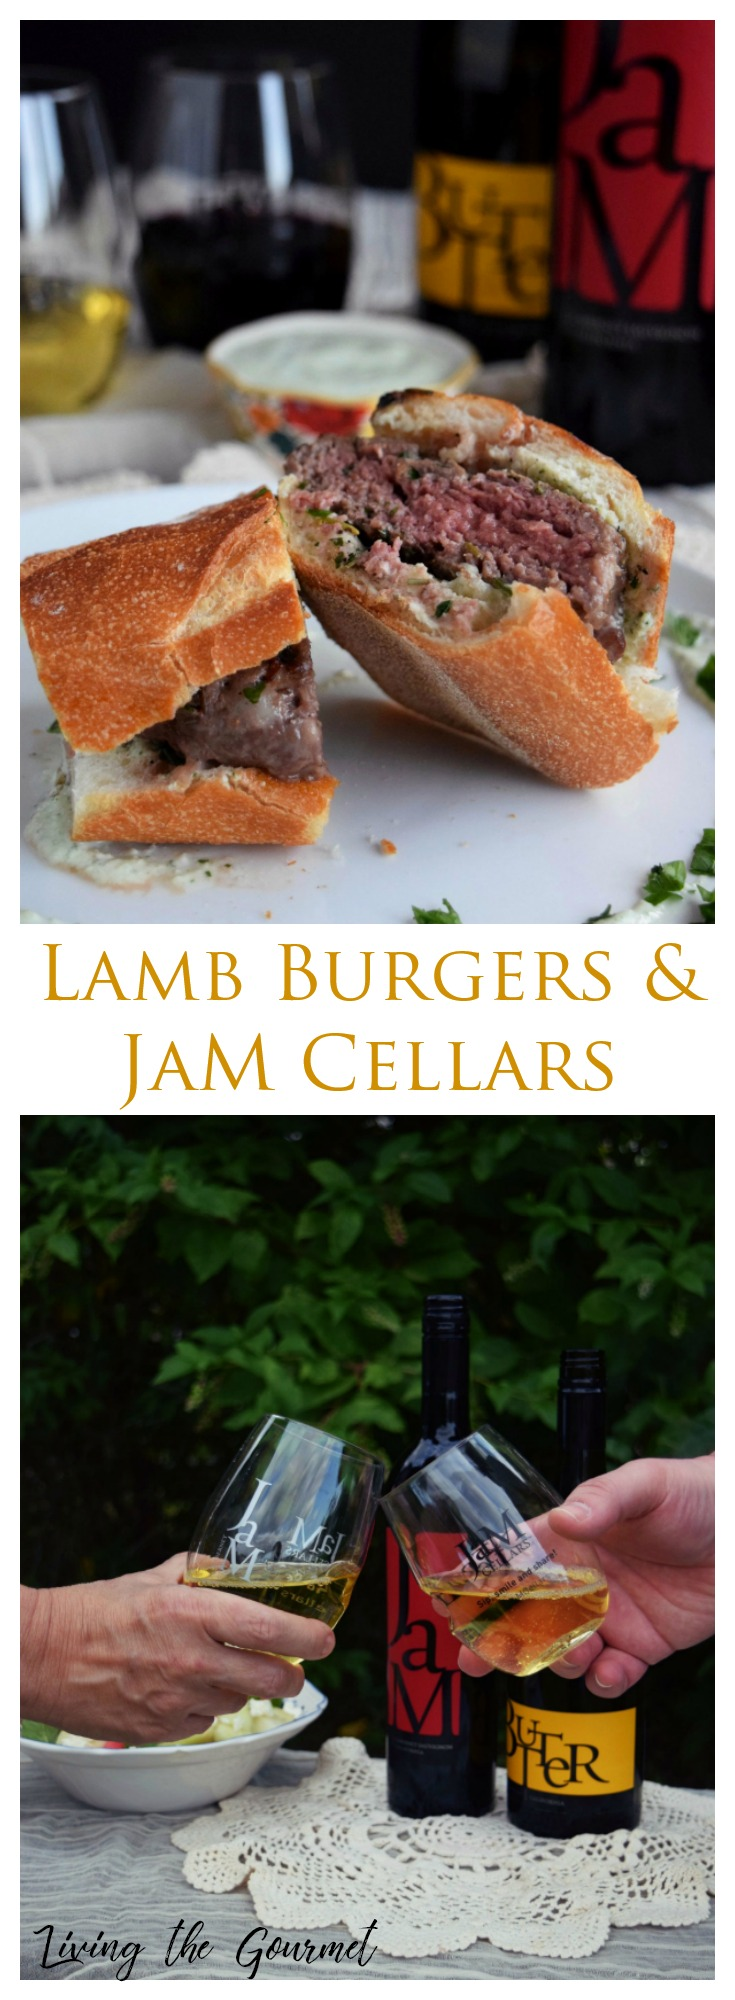 Living the Gourmet: Give summer a proper send off with these juicy Lamb Burgers paired alongside a glass of JaM Cellars | #JaMwinetime #ad